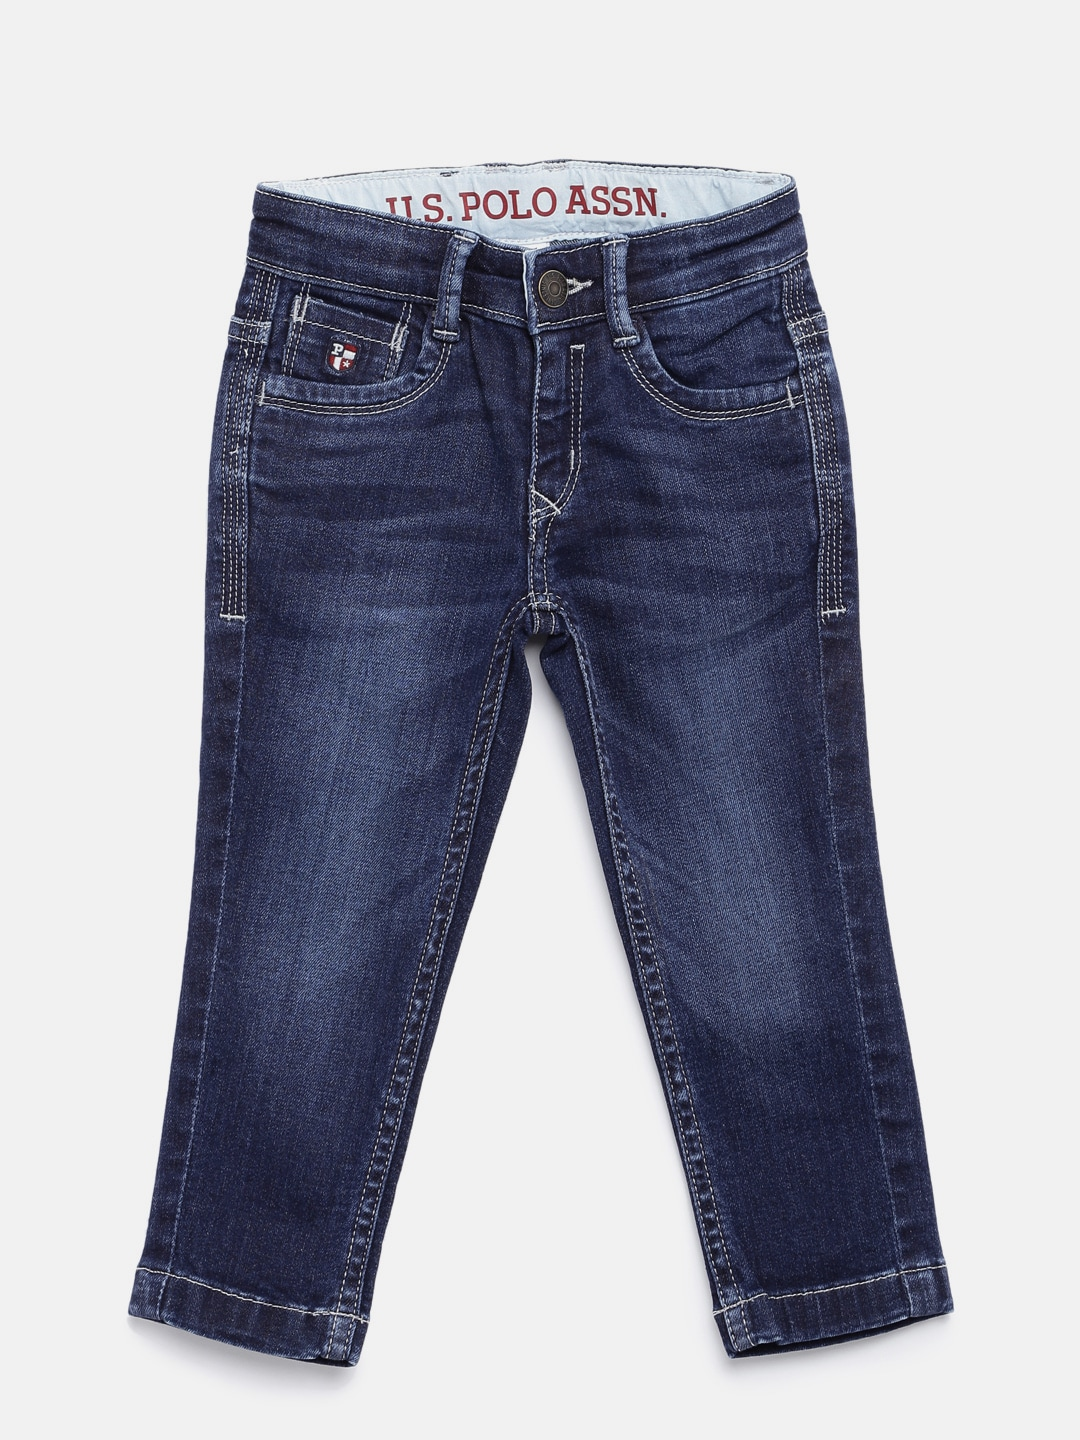 badd616a9606f Us Polo Assn Kids Jeans - Buy Us Polo Assn Kids Jeans online in India